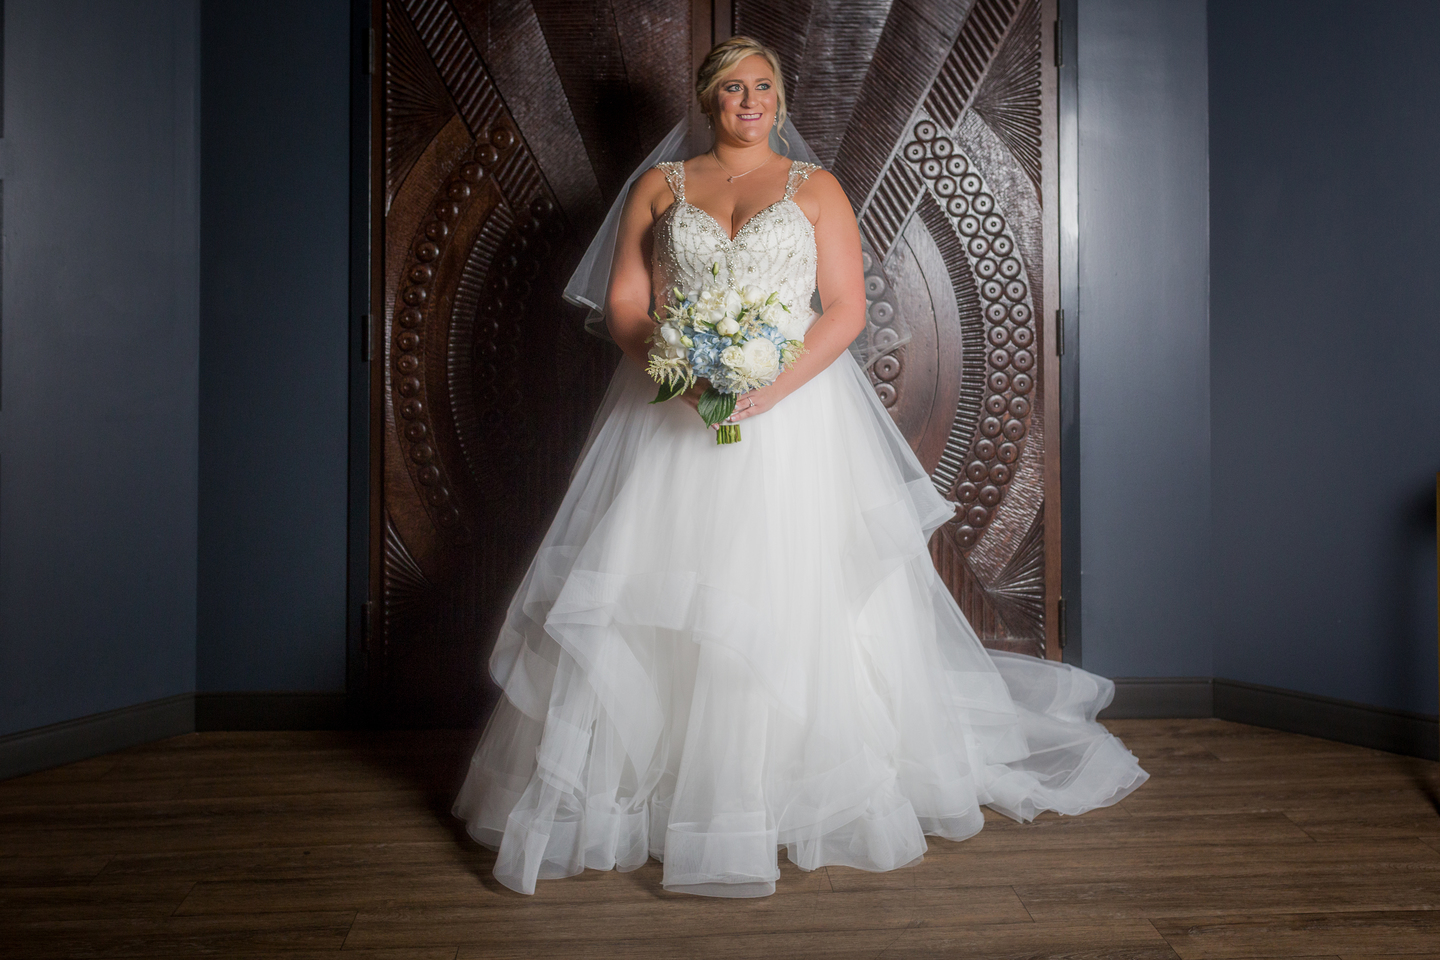 Wedding ball gown: Charming & Fun Hutton Hotel Nashville Wedding